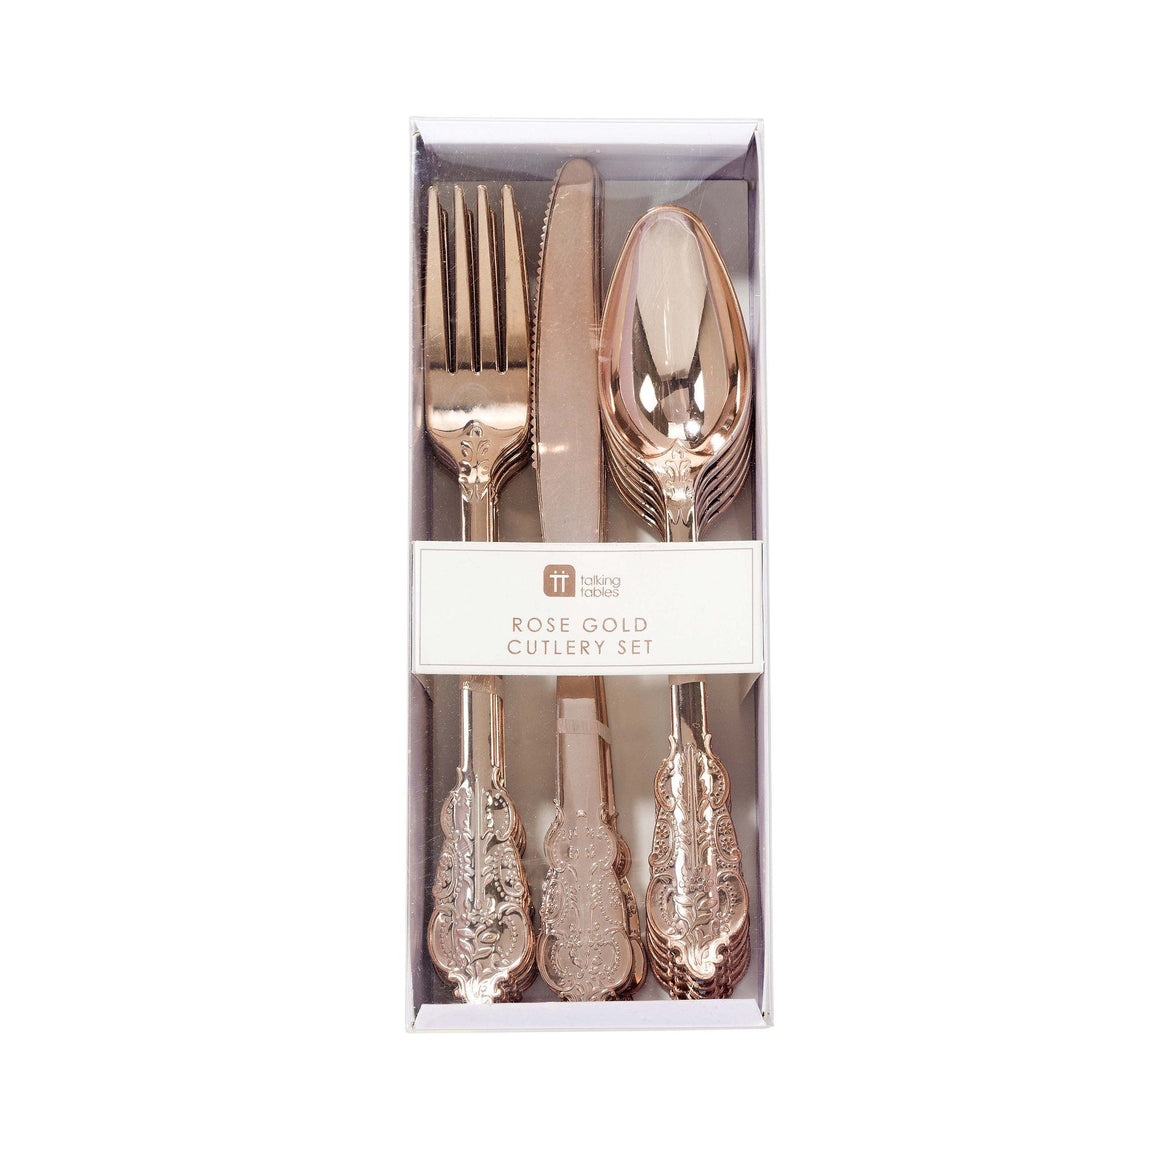 PREMIUM CUTLERY SET - ORNATE ROSE GOLD